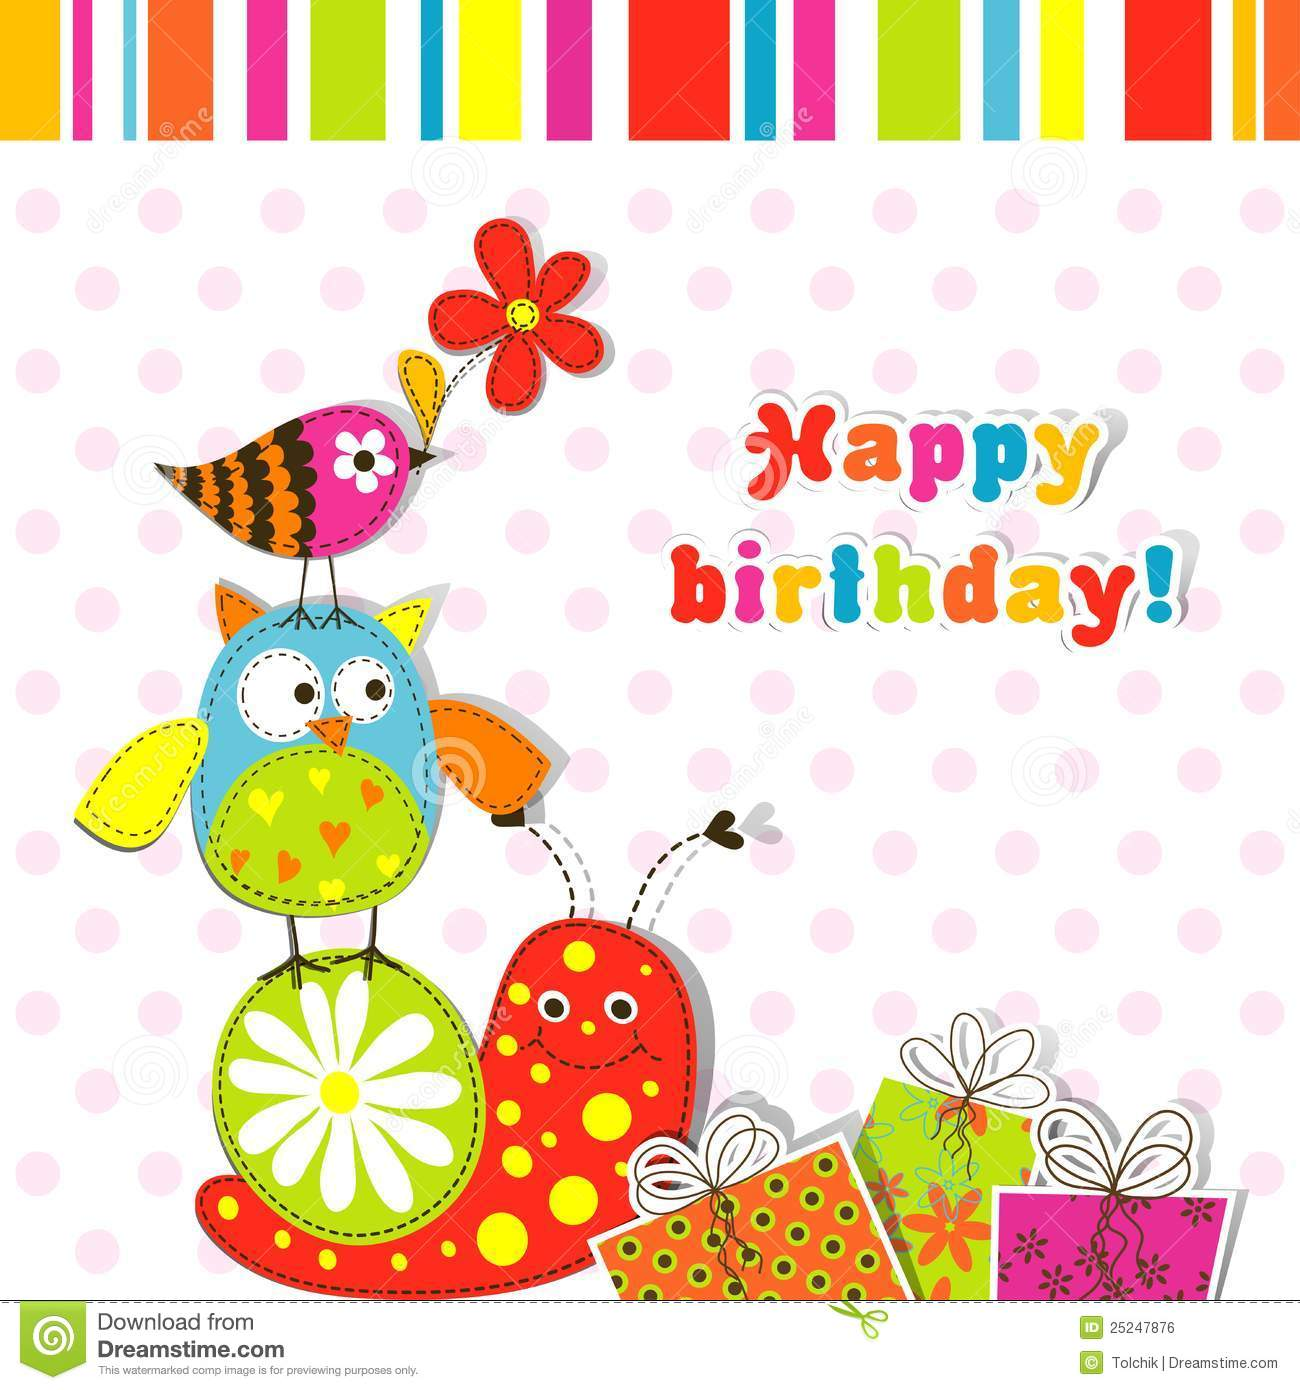 design birthday card with photo free ; greeting-card-free-square-square-pink-red-polka-dot-pattern-snail-owl-bird-and-gift-picture-template-greeting-card-royalty-free-stock-image